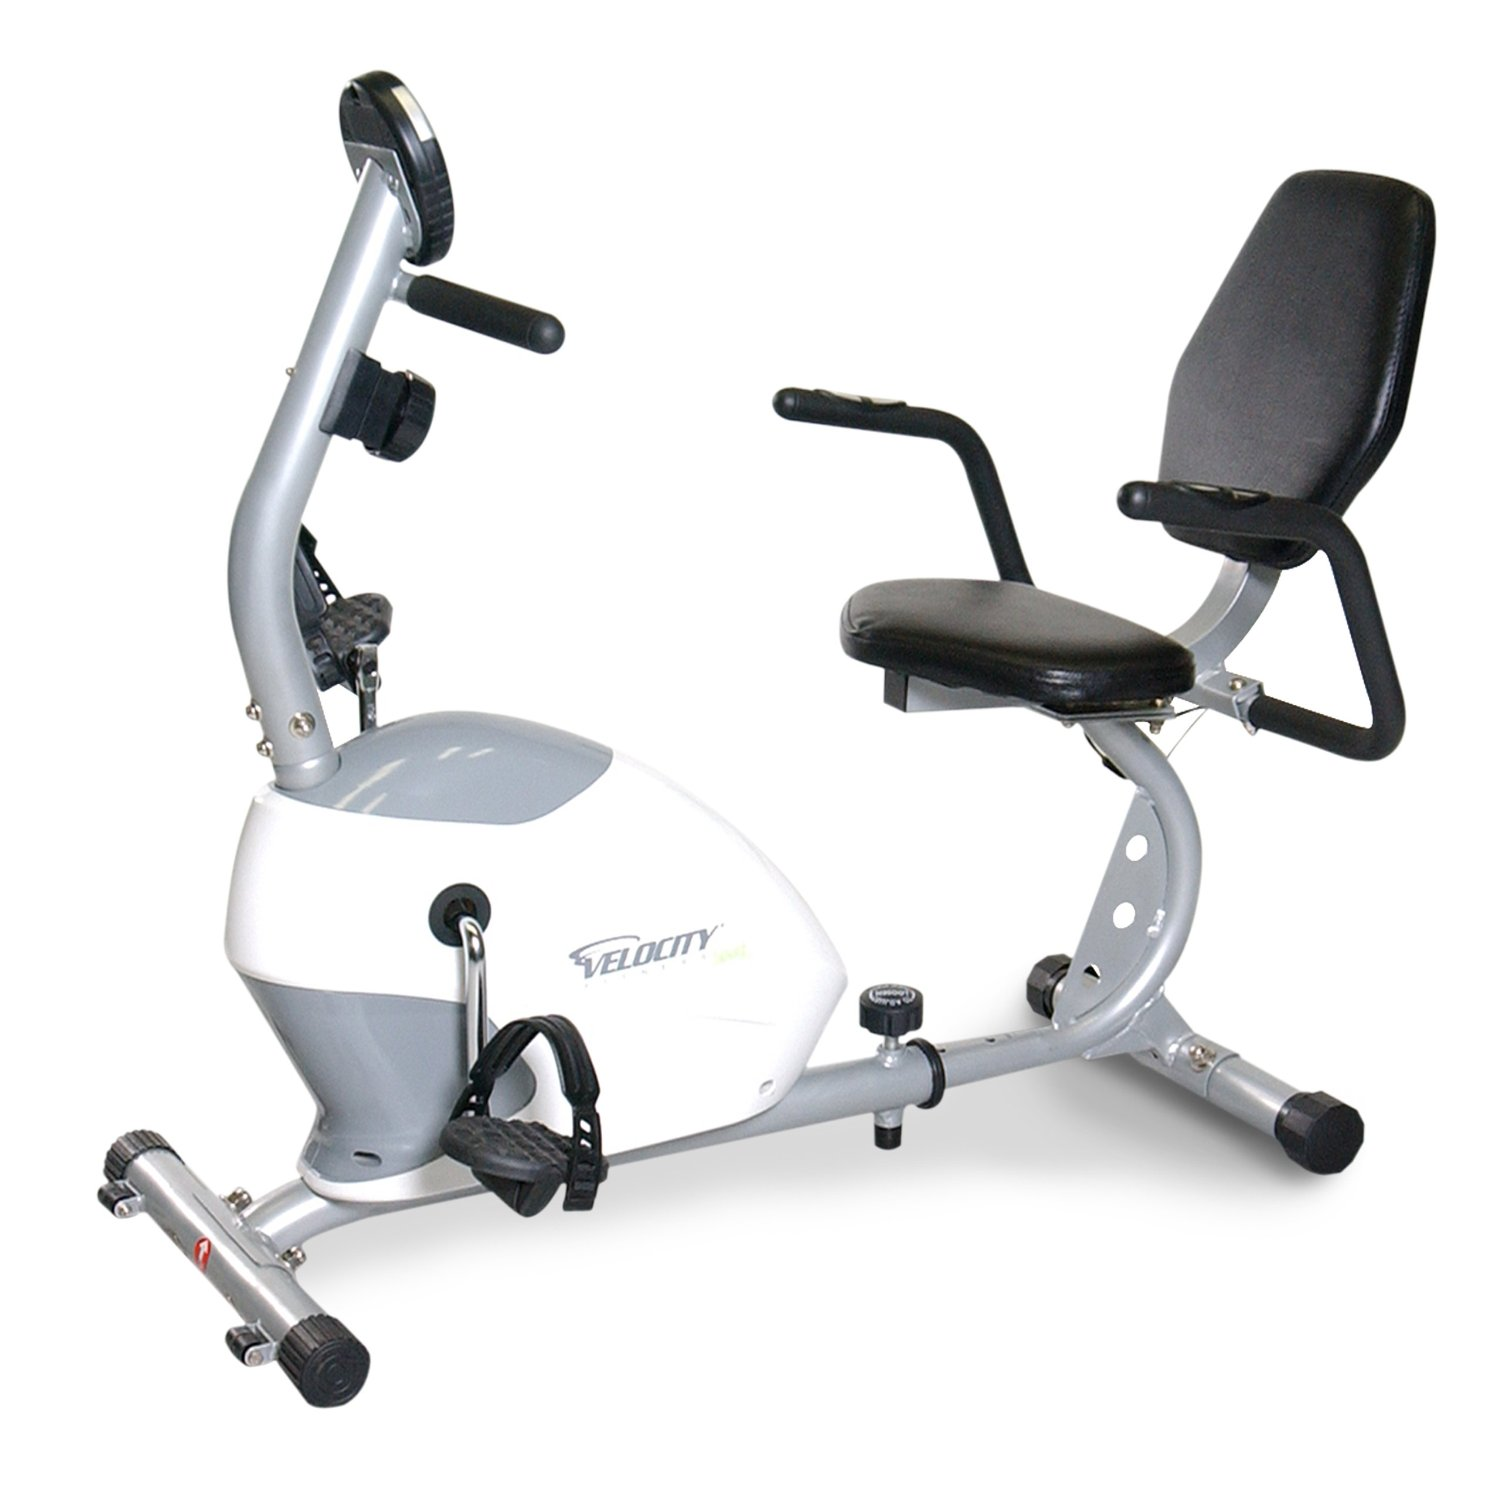 Top 10 Best Recumbent Bike Reviews – Your Ultimate Guide [2019]